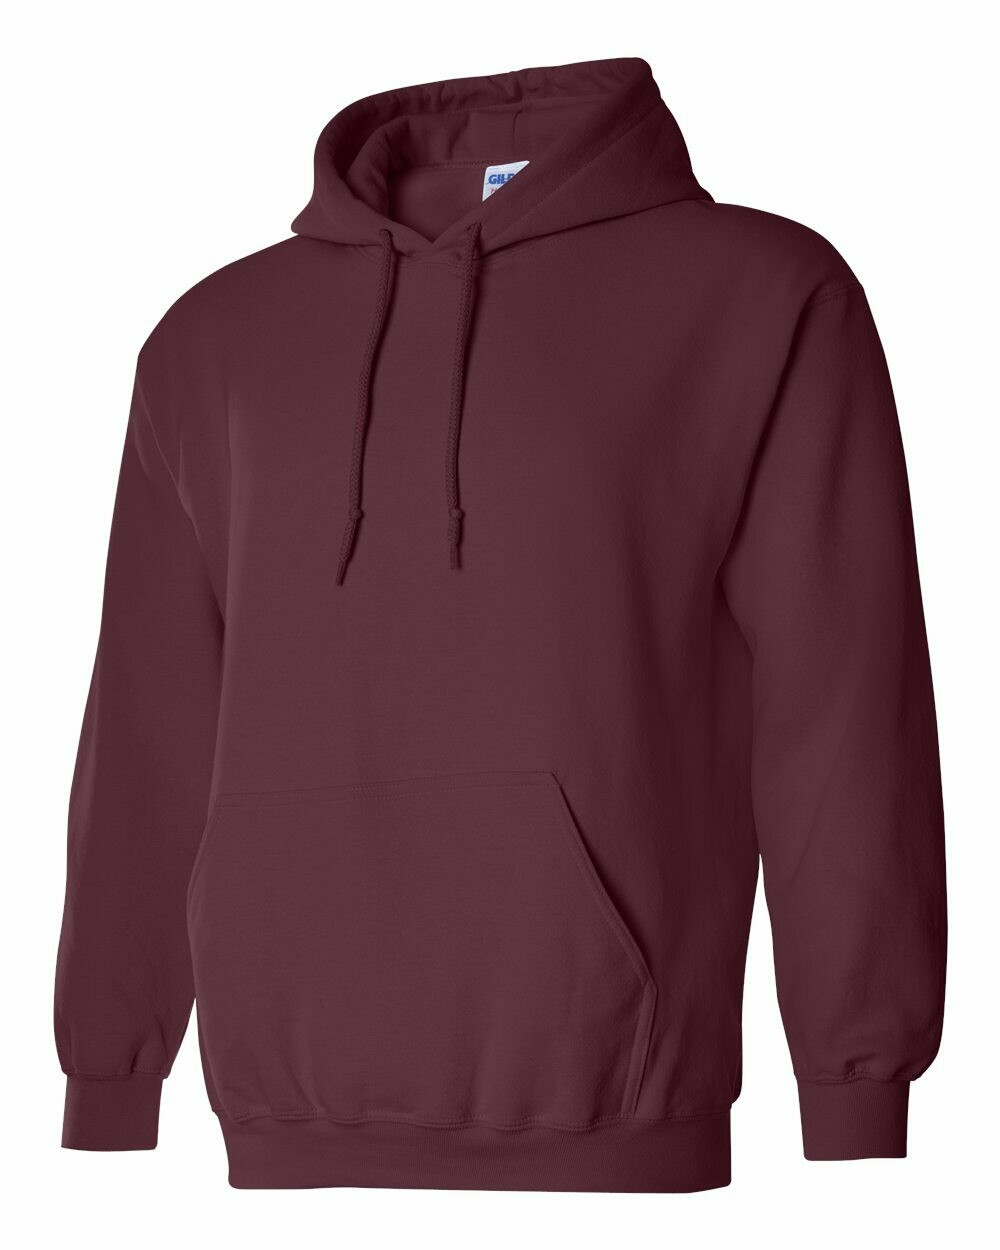 St. James Saints Heavy Blend Hooded Sweatshirt - Youth